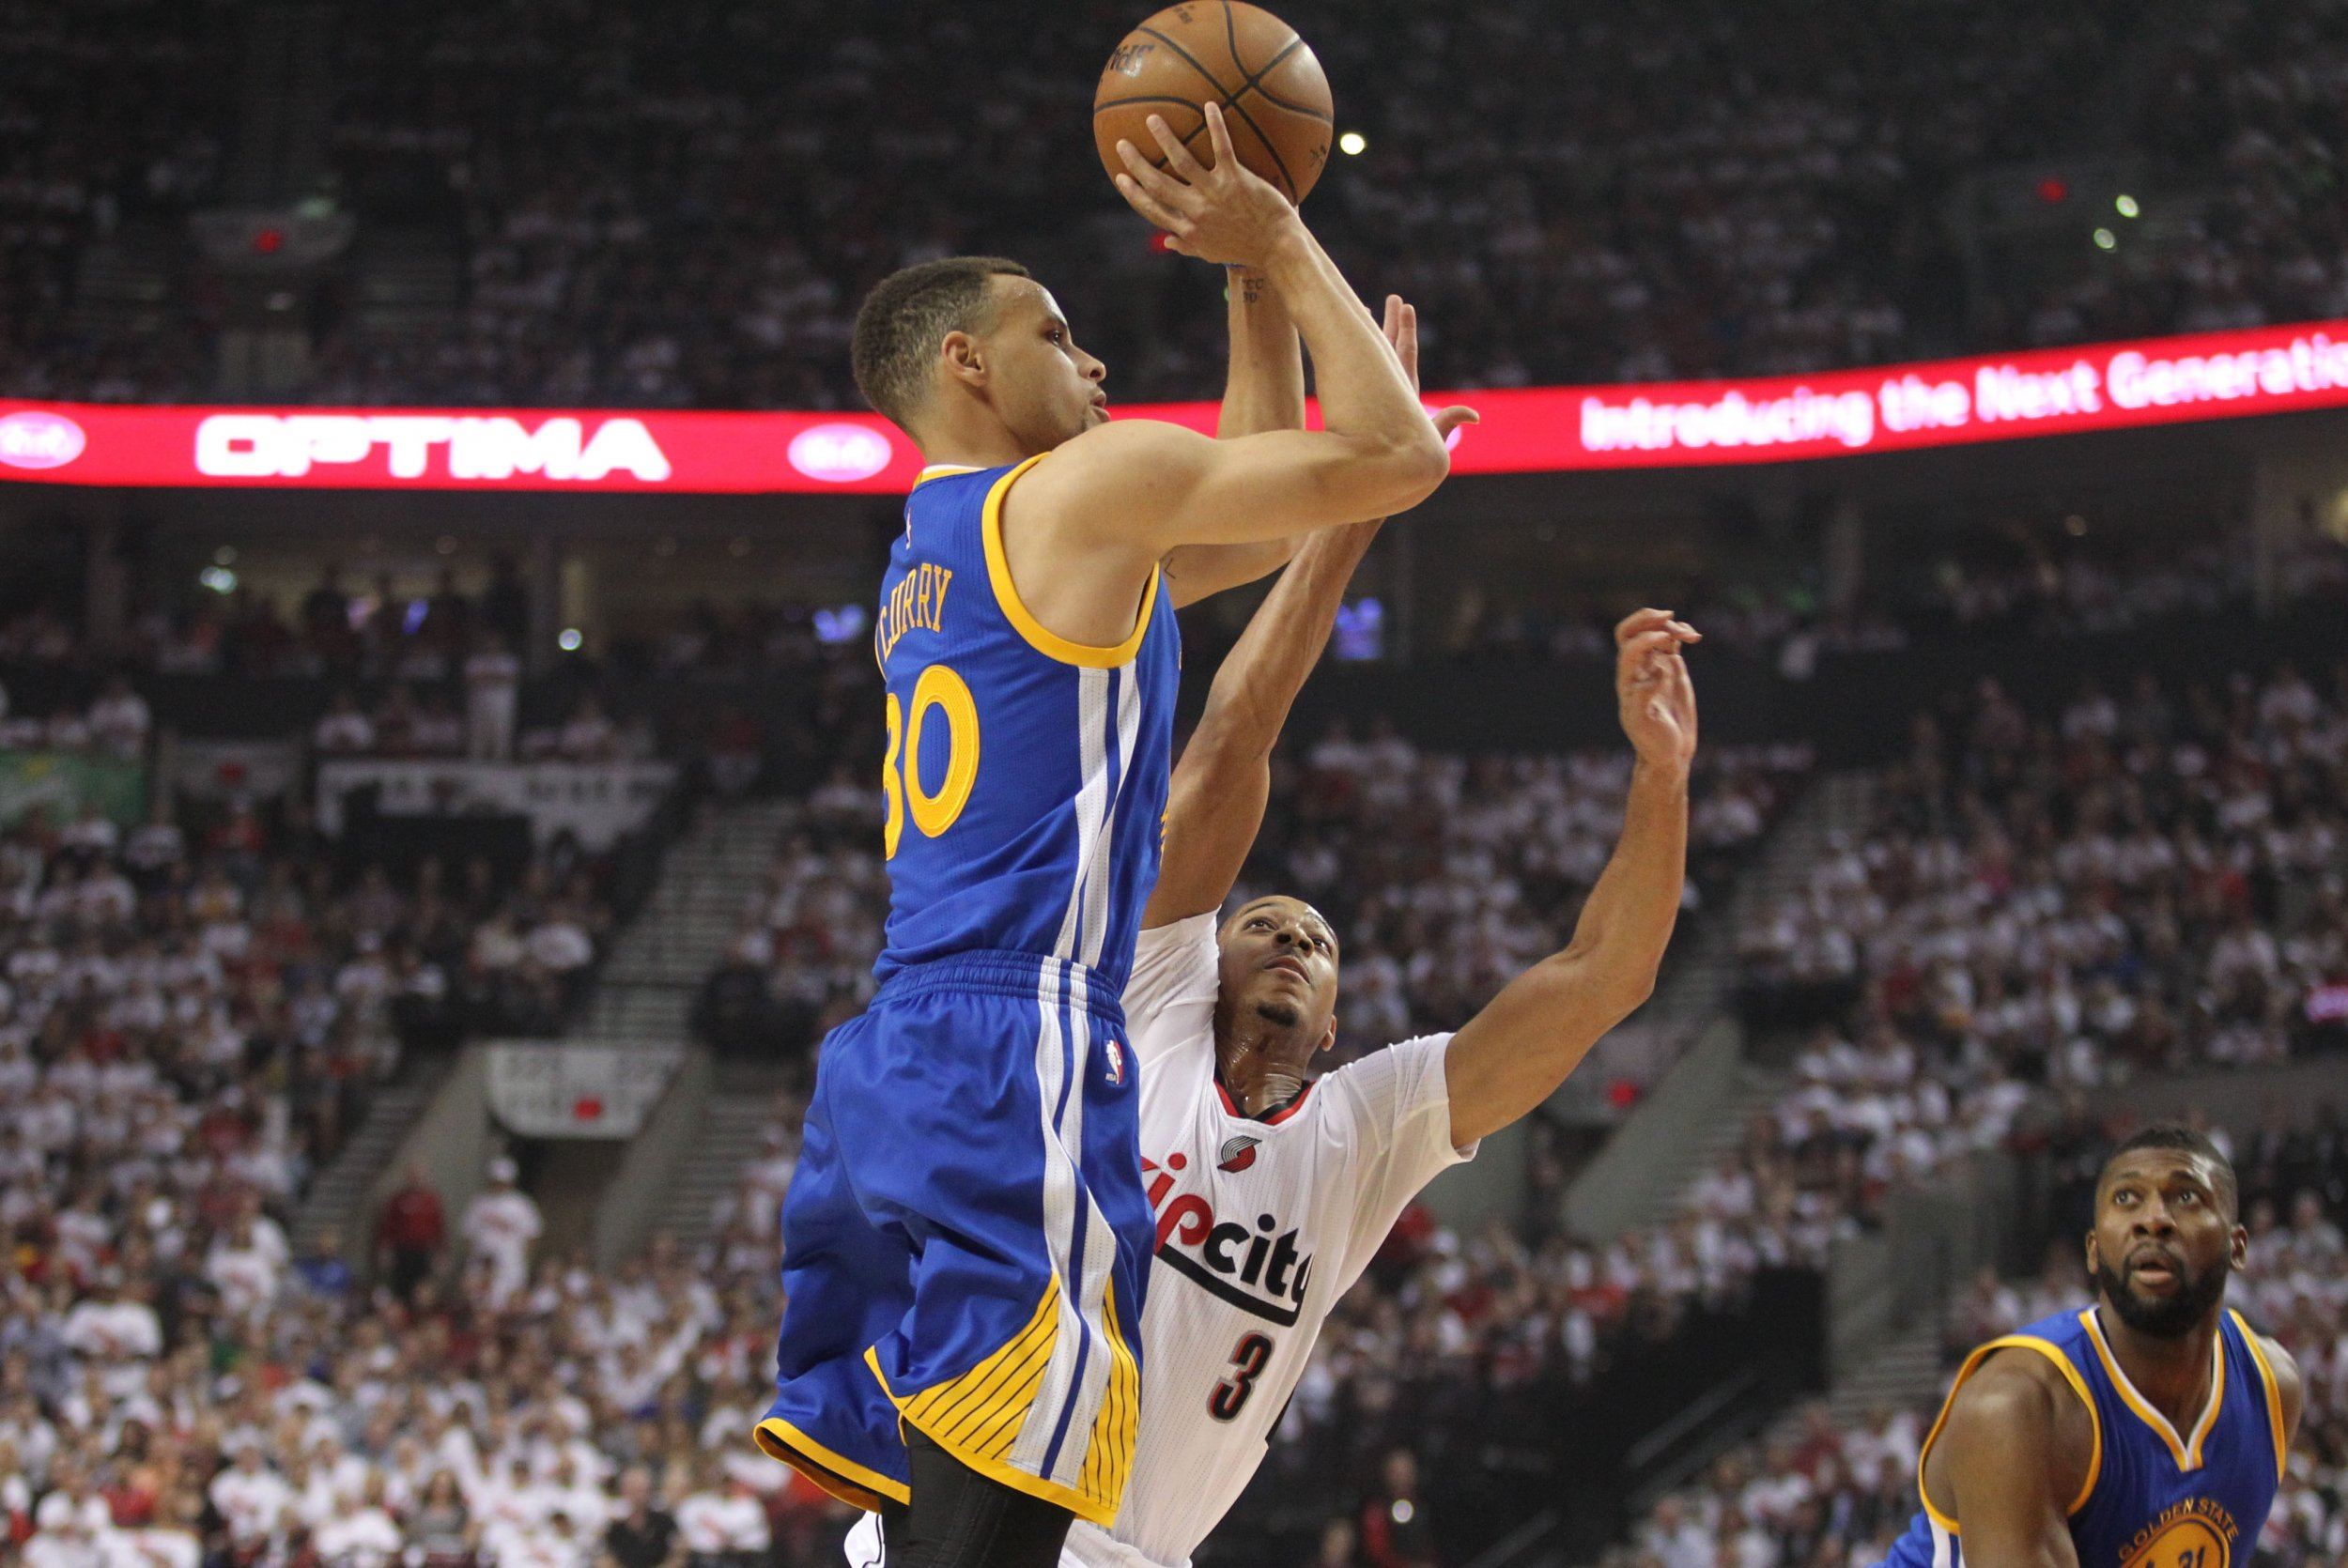 e4eb7152f91d Curry shot above 45 percent from beyond the arc while making an NBA-record  402 this season. USA TODAY SPORTS